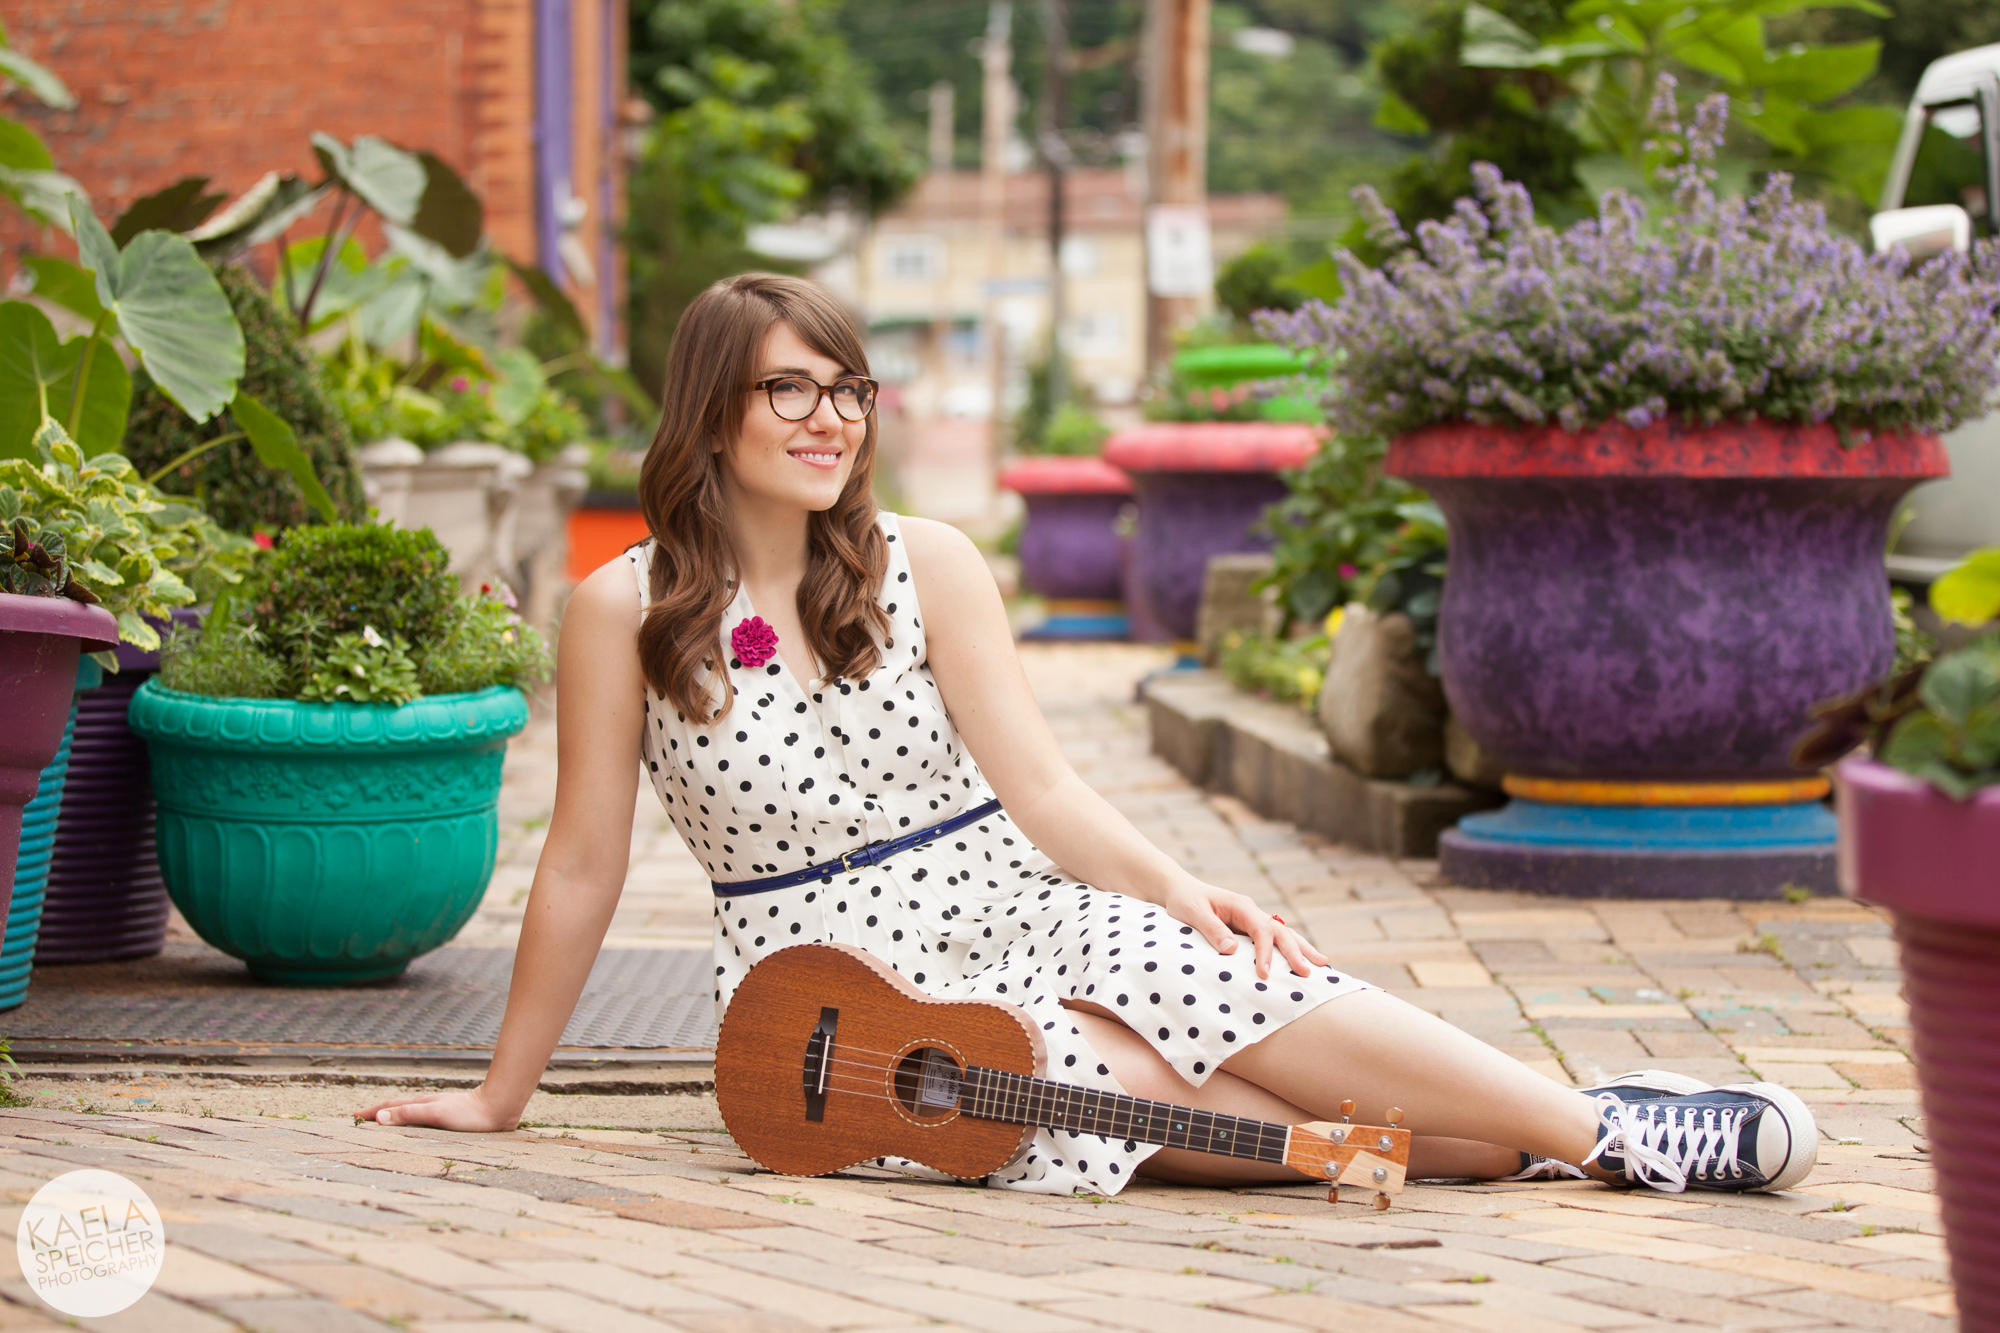 Ukulele Lounging by Kaela Speicher Photography